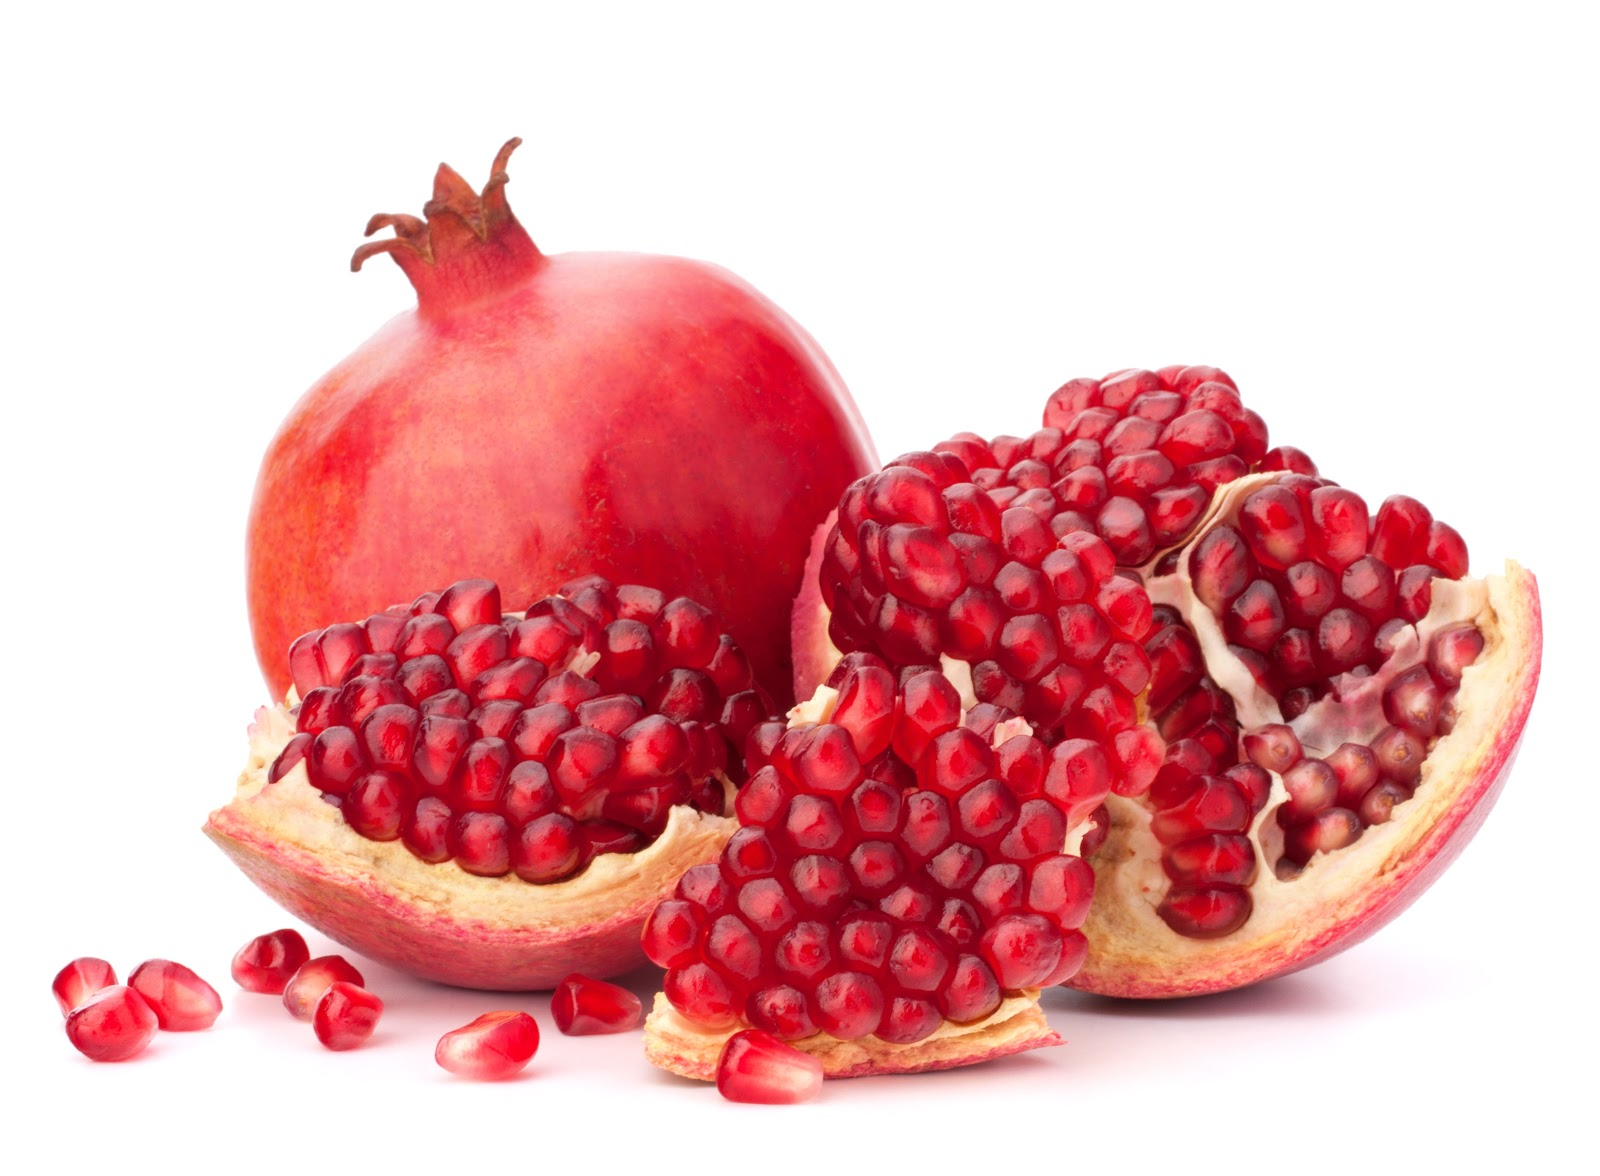 Pomegranate Promotes Digestive Health